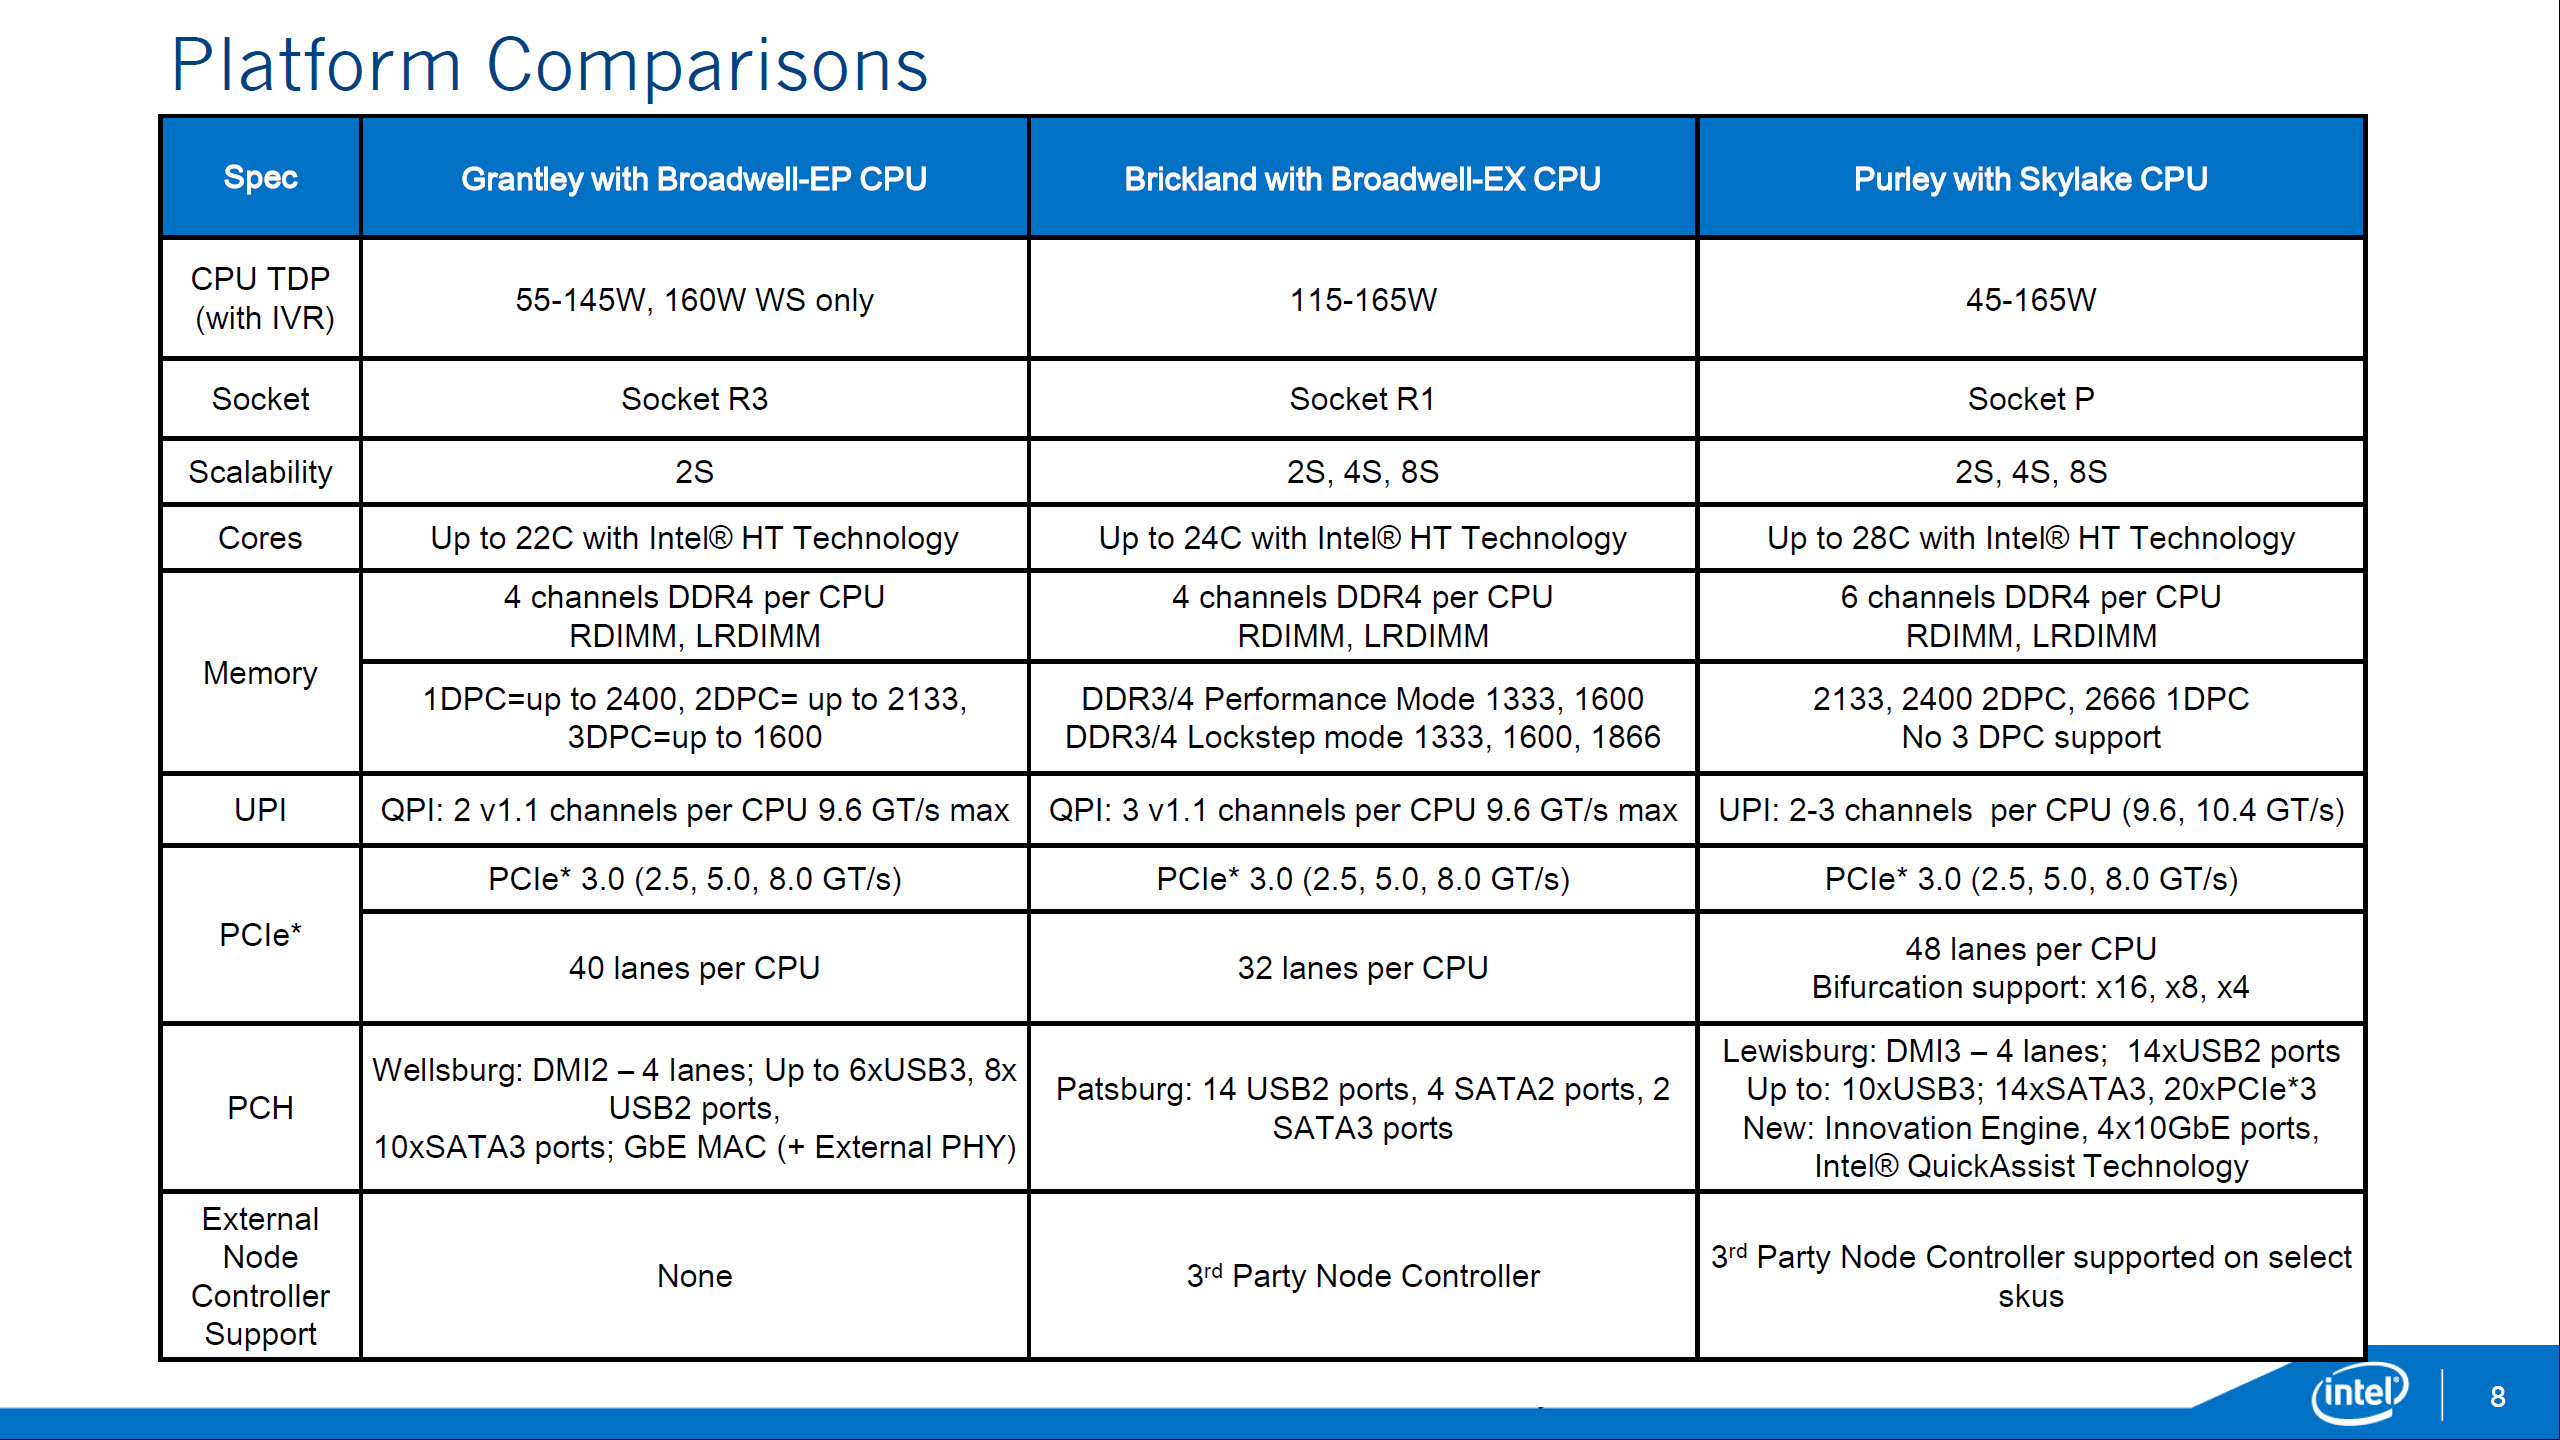 New info on Skylake Xeon chips leaked, meet Skylake Purley.